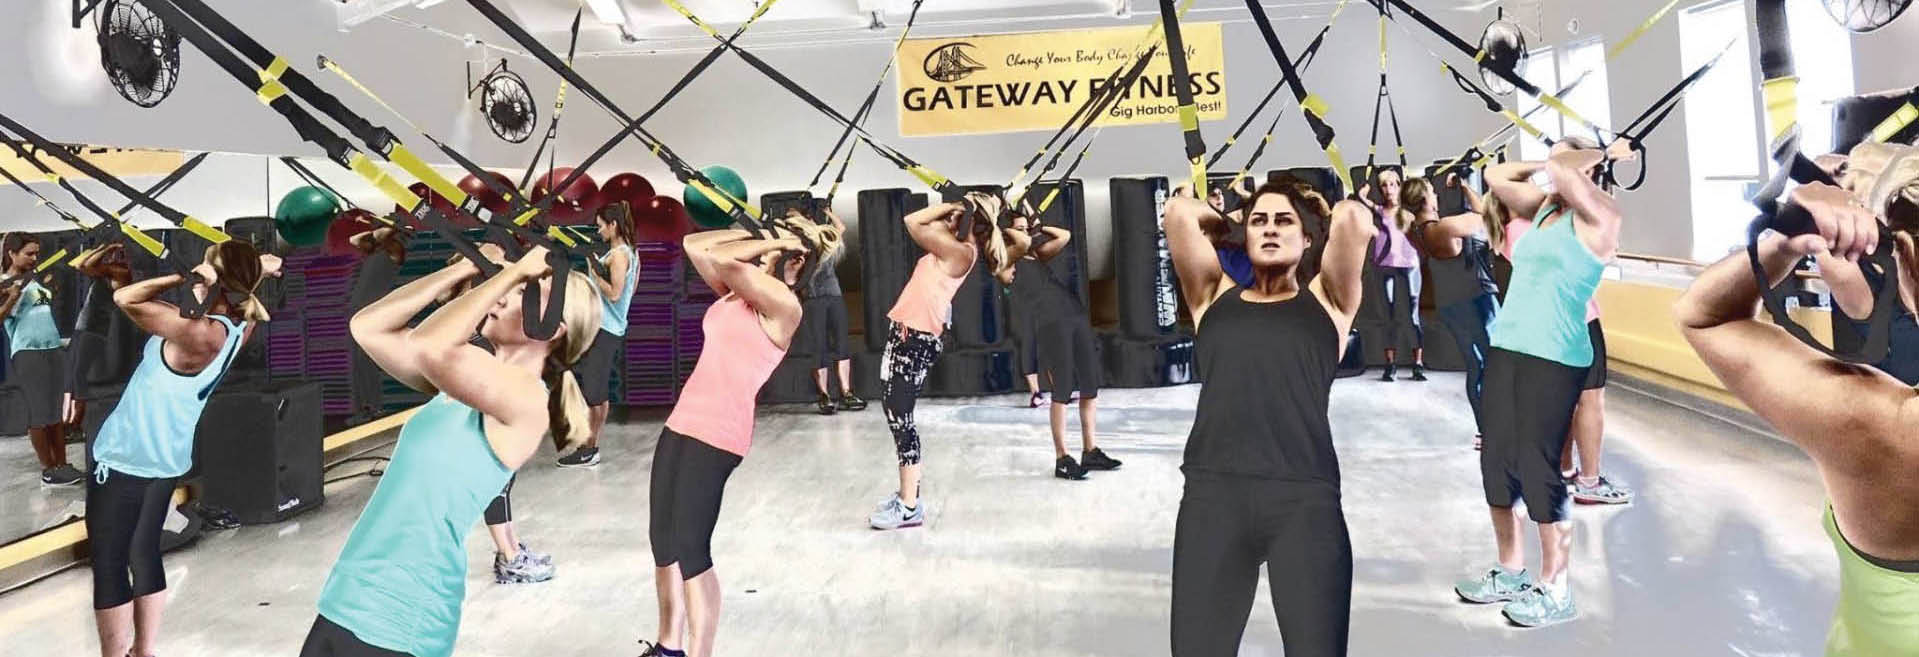 Gateway Fitness main banner image - Gig Harbor, WA - TRX classes